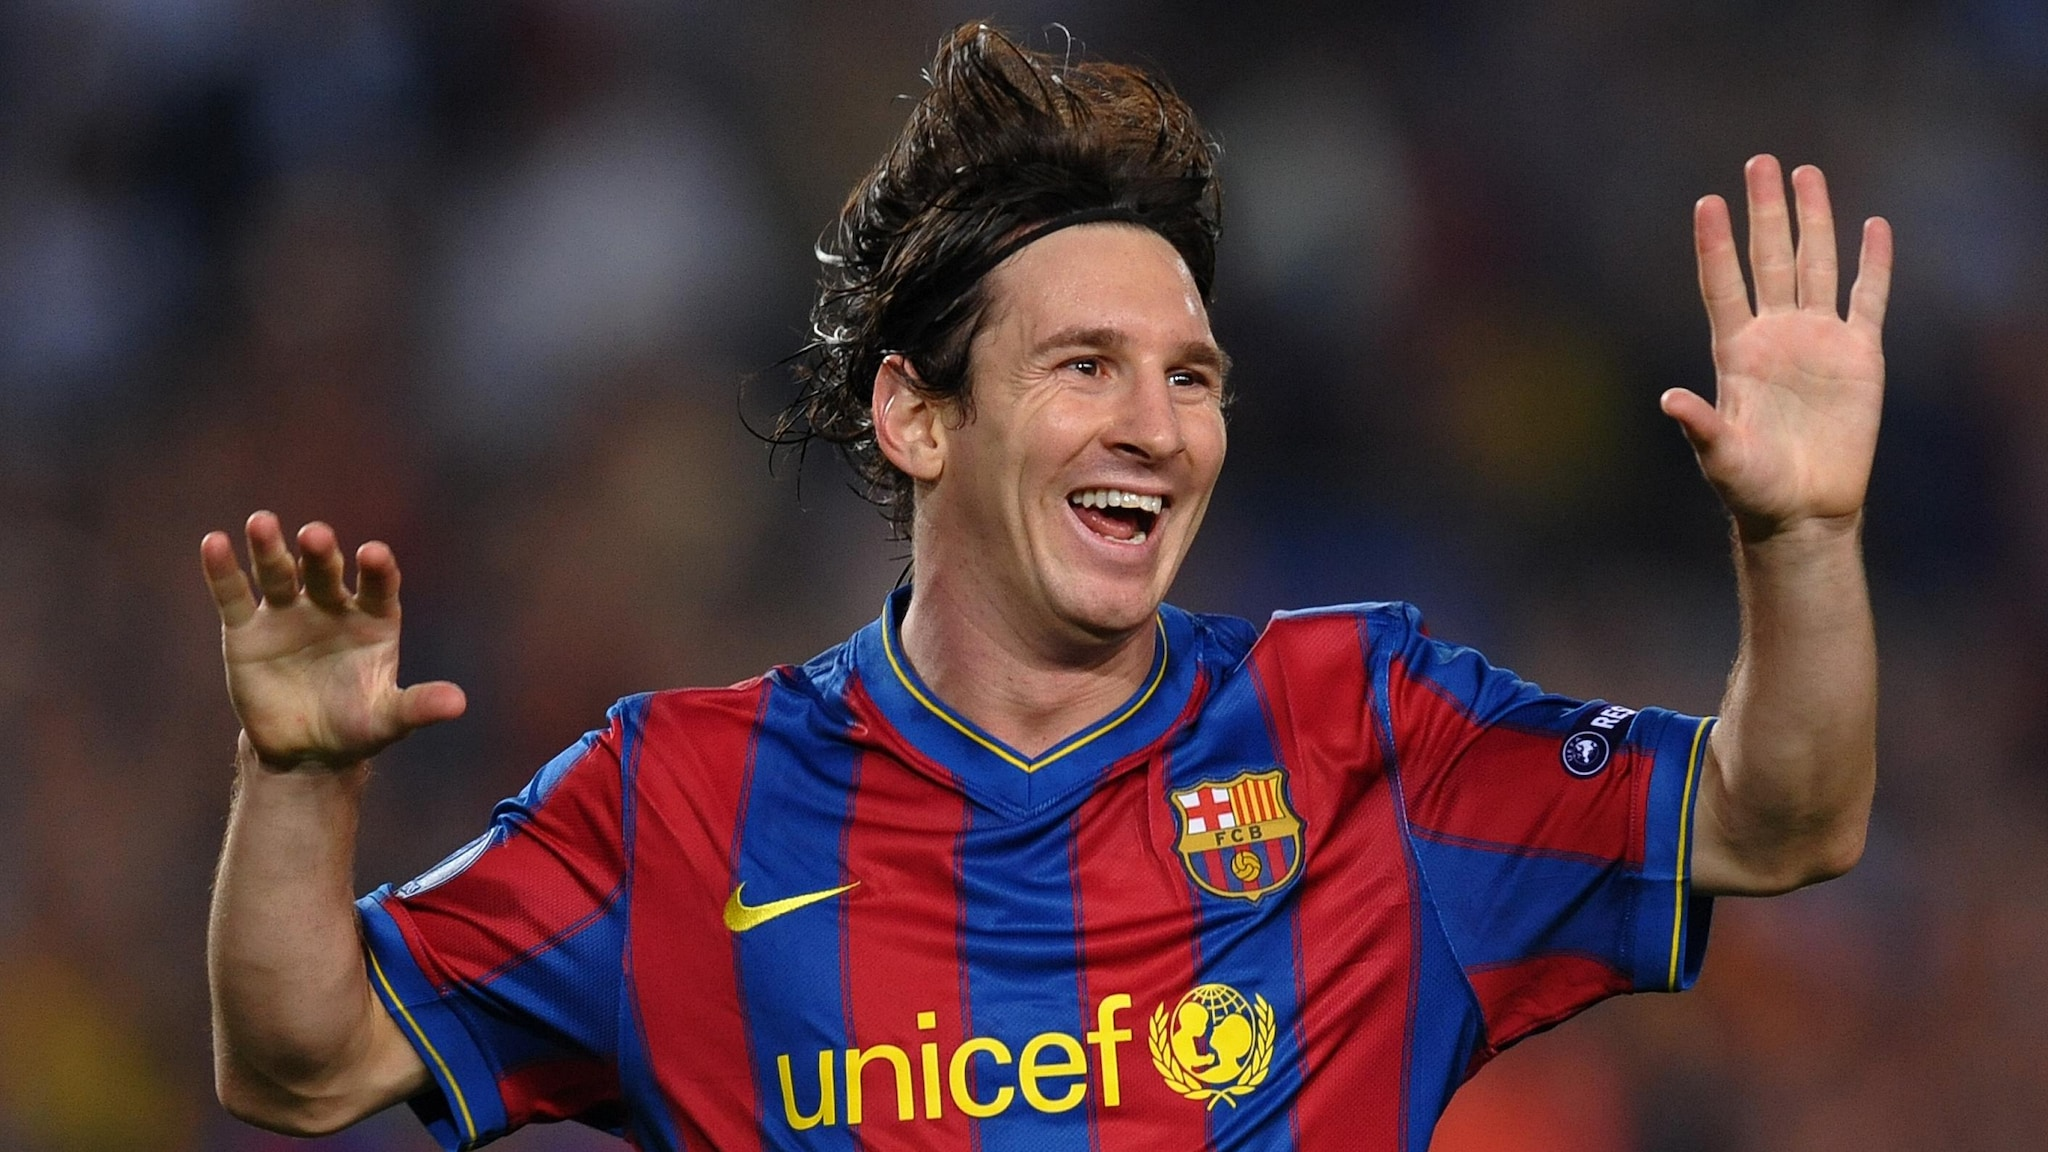 Try our Lionel Messi quiz! | UEFA Champions League - My ...